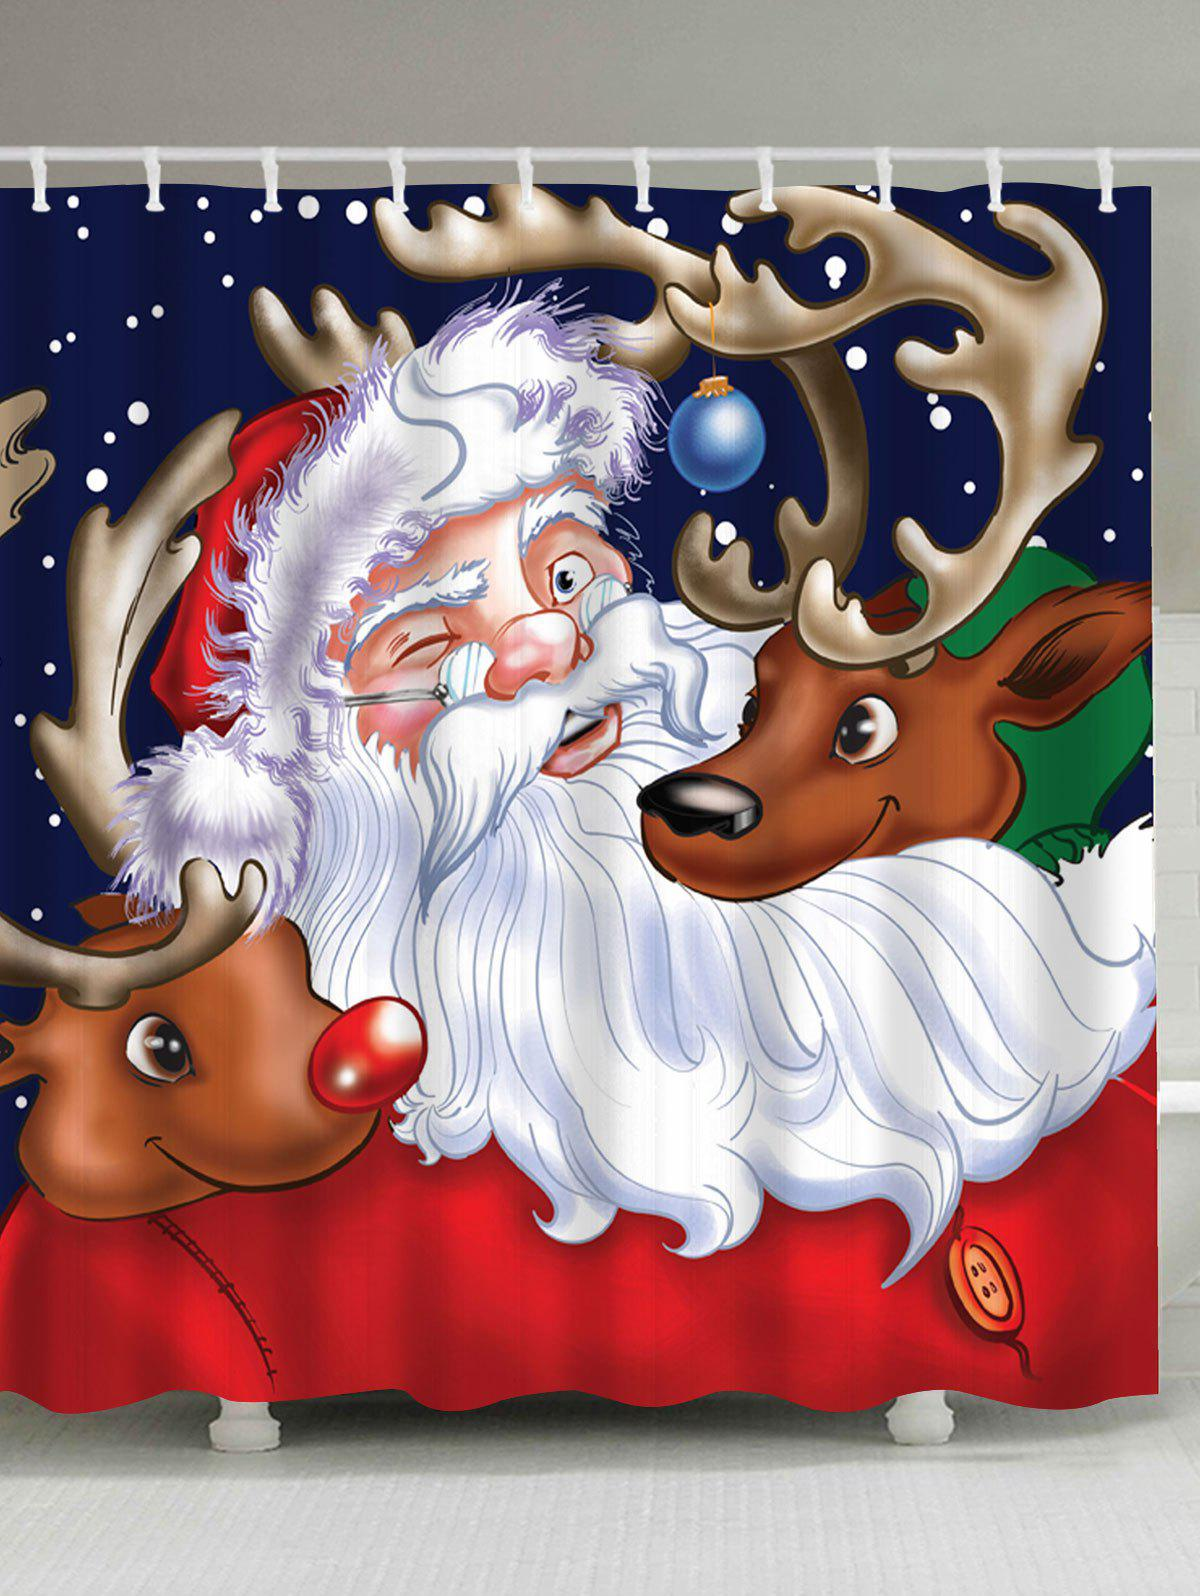 Santa Claus Reindeer Waterproof Christmas Shower CurtainHOME<br><br>Size: W59 INCH * L71 INCH; Color: COLORMIX; Products Type: Shower Curtains; Materials: Polyester; Pattern: Animal,Santa Claus; Style: Festival; Number of Hook Holes: W59 inch*L71 inch: 10; W71 inch*L71 inch: 12; W71 inch*L79 inch: 12; Package Contents: 1 x Shower Curtain 1 x Hooks (Set);